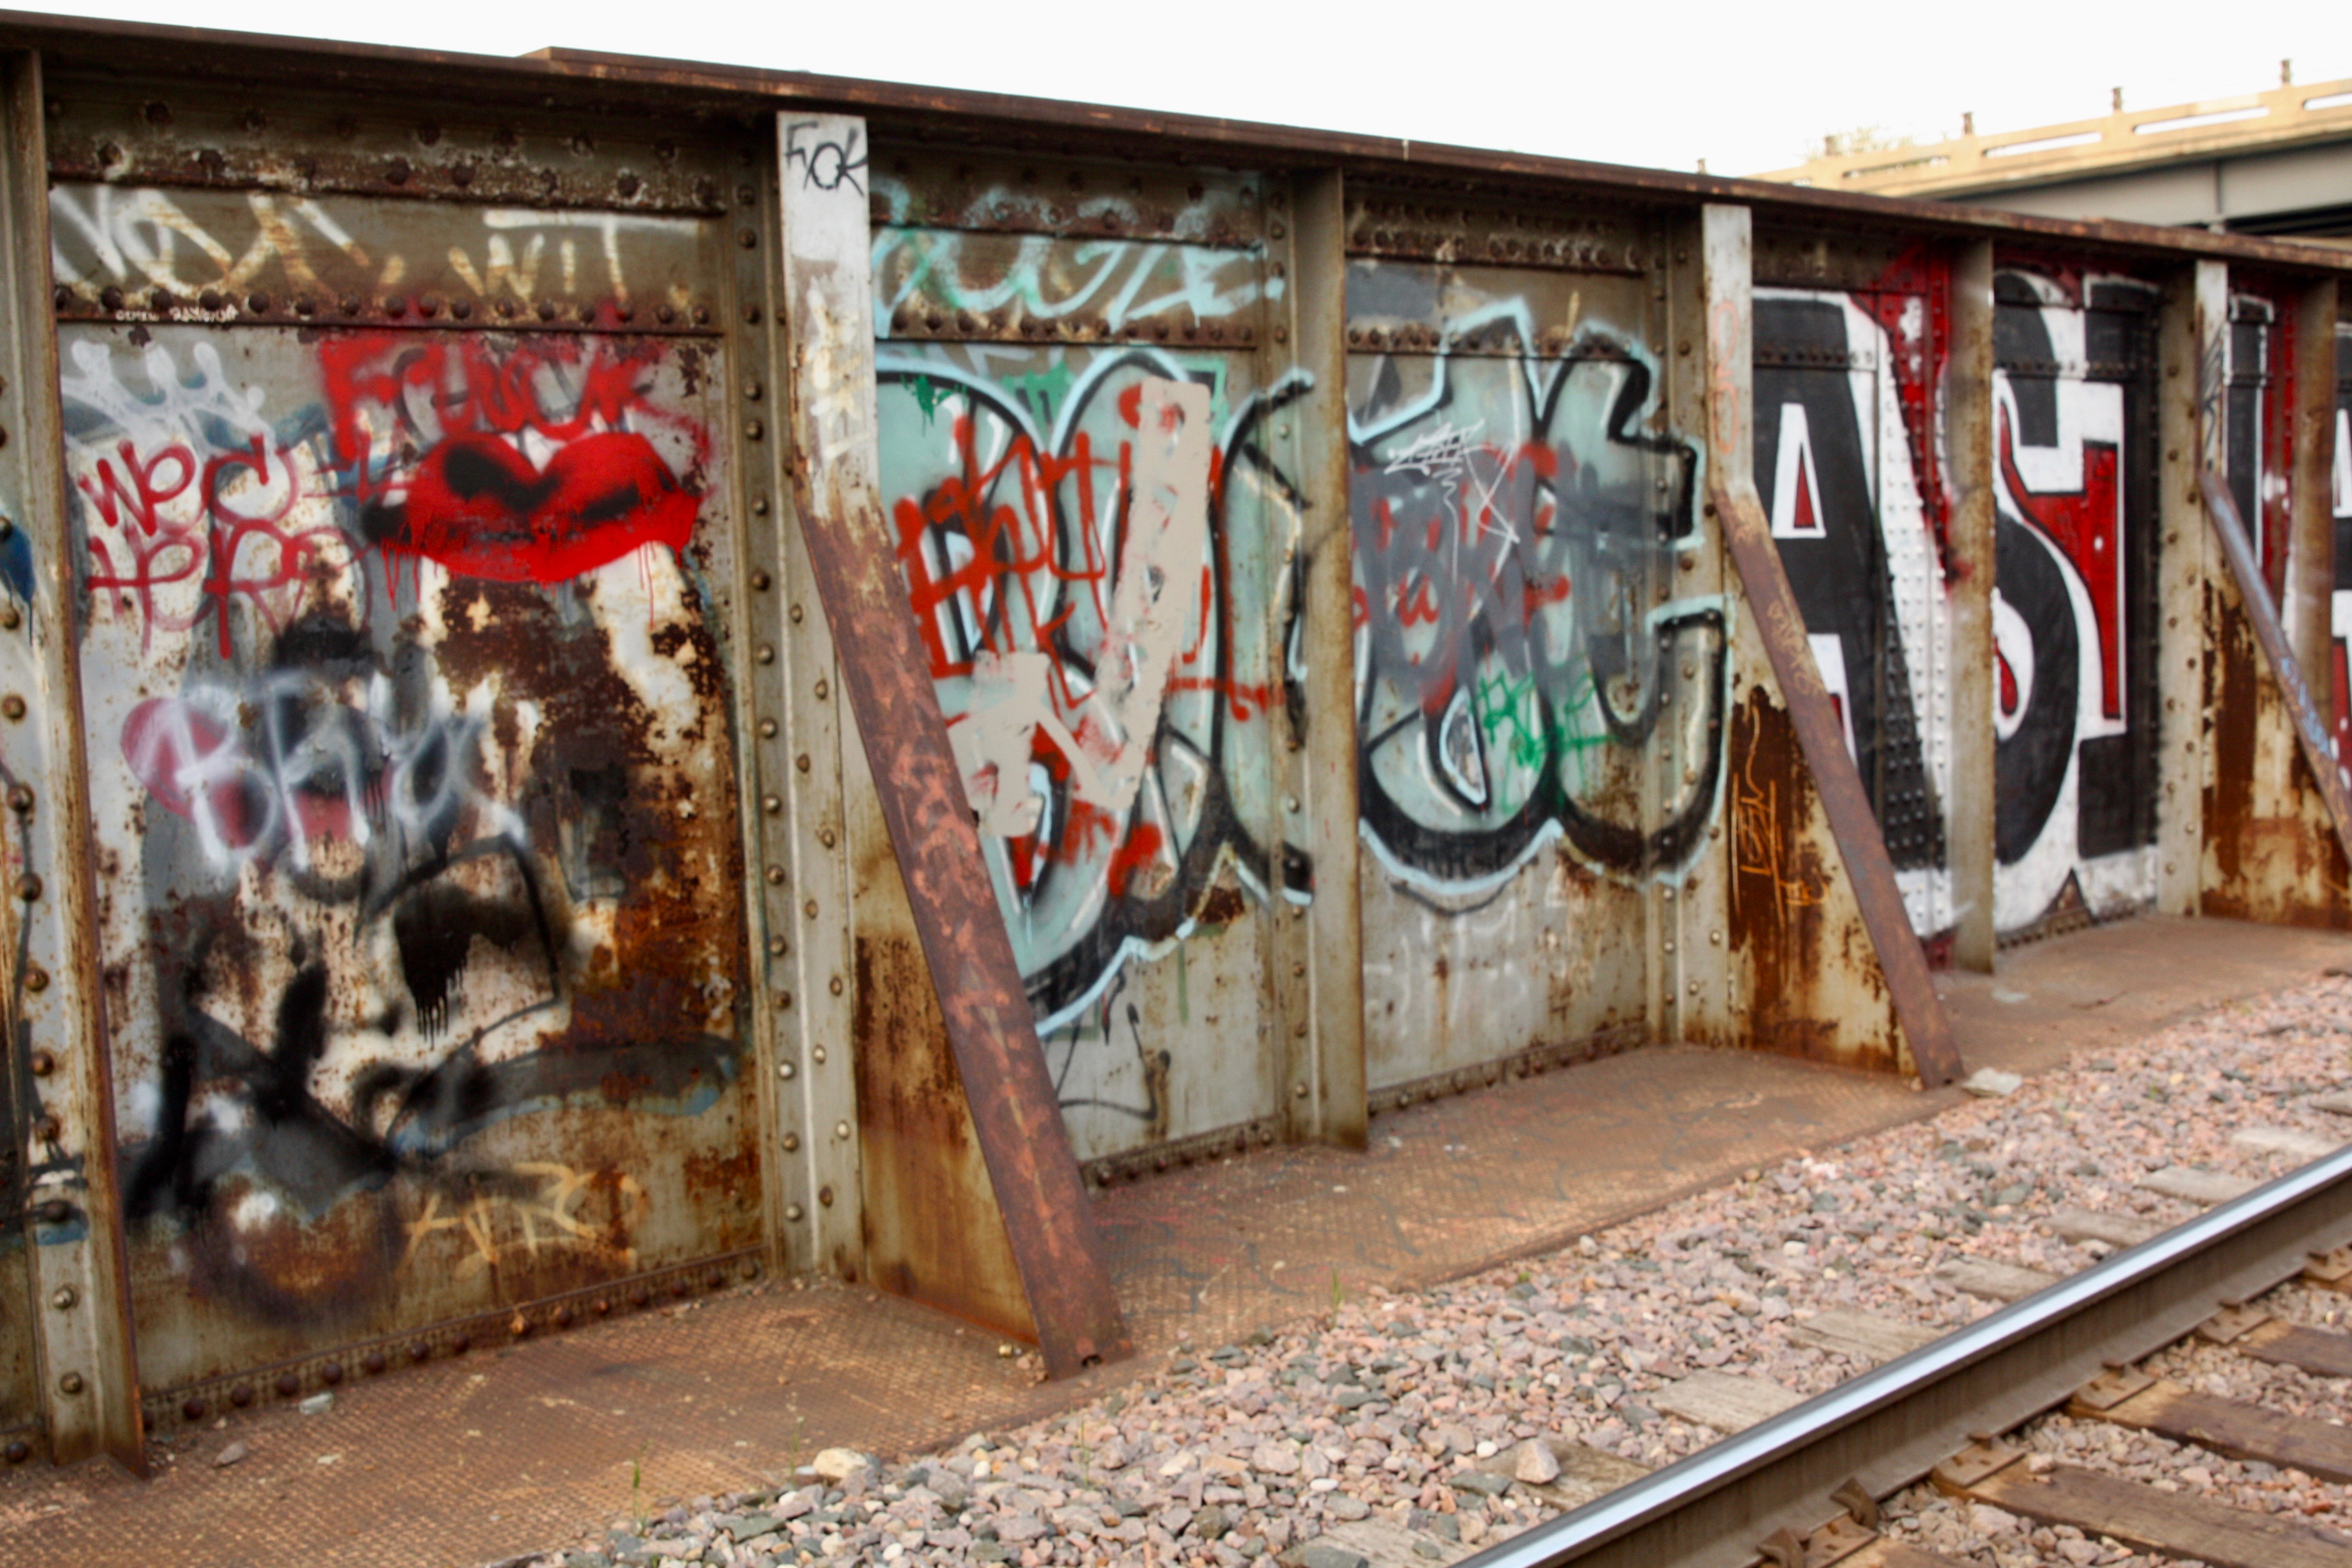 Bridges are more protected than the train cars and get their share of spray paint.